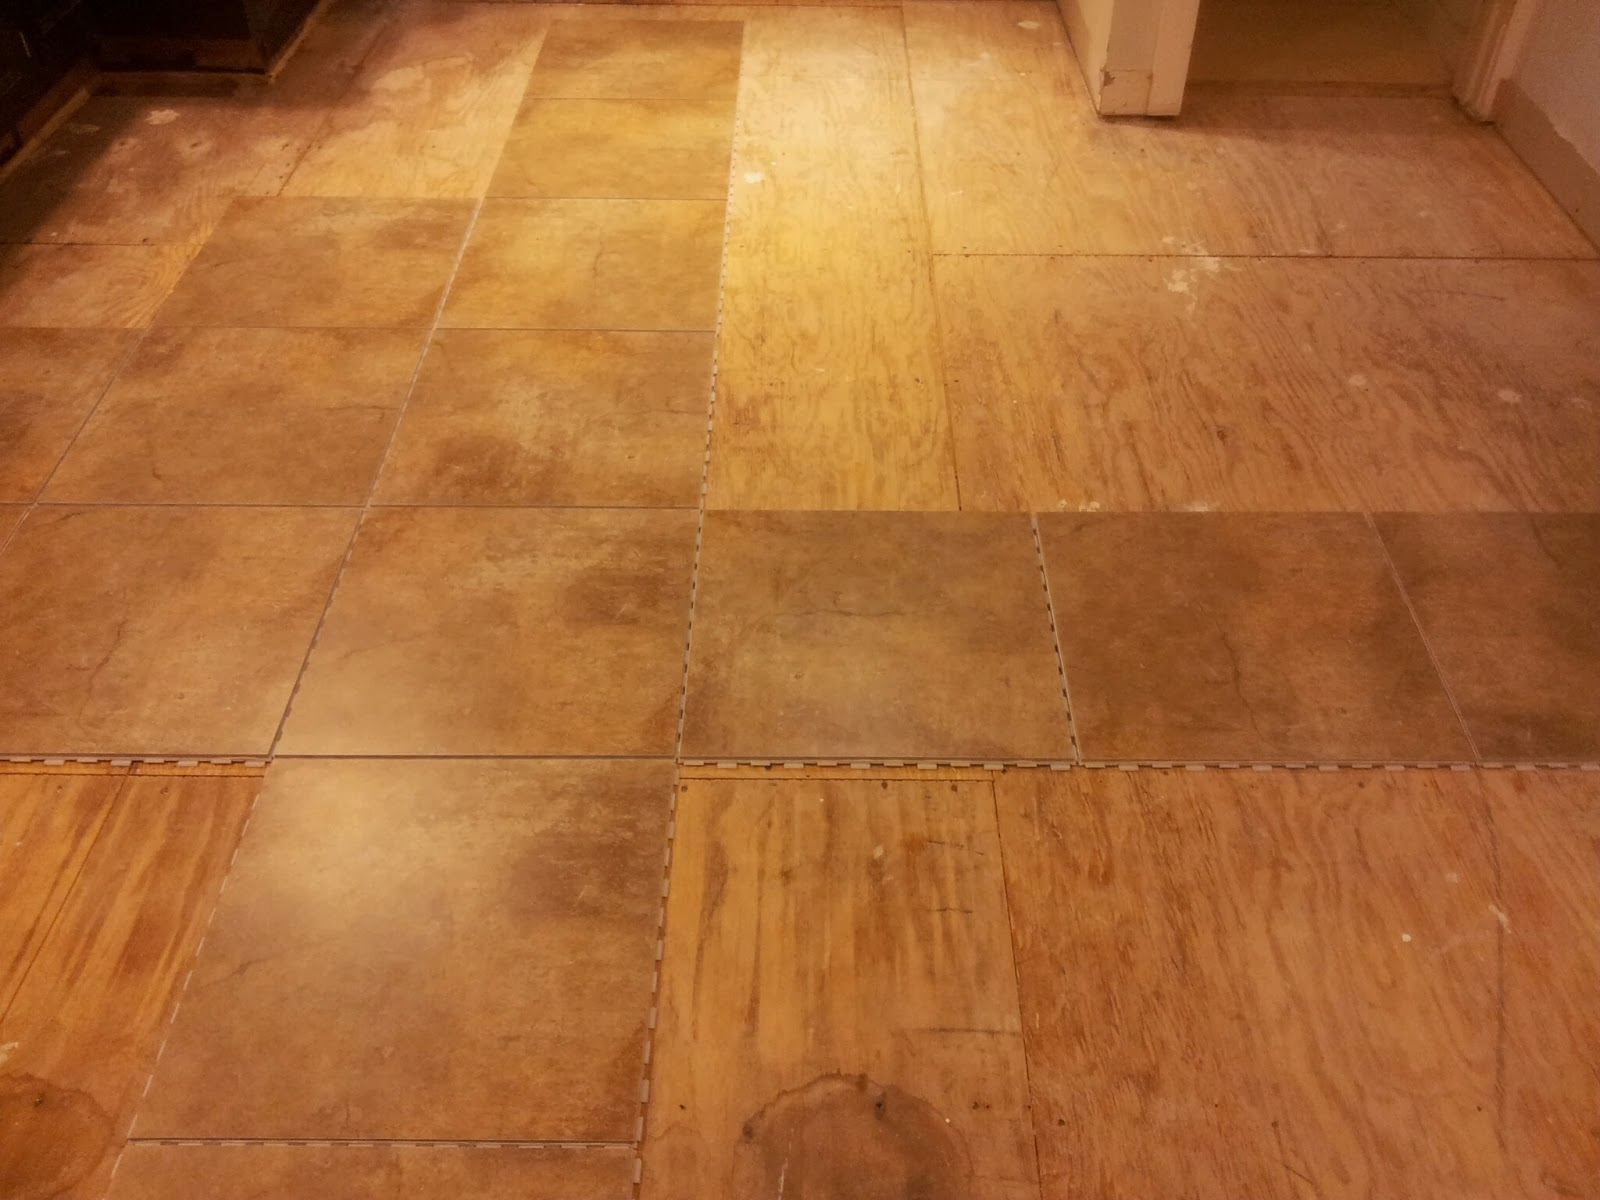 Installing Snapstone Kitchen Floor Tile For Our Home Remodel Ian